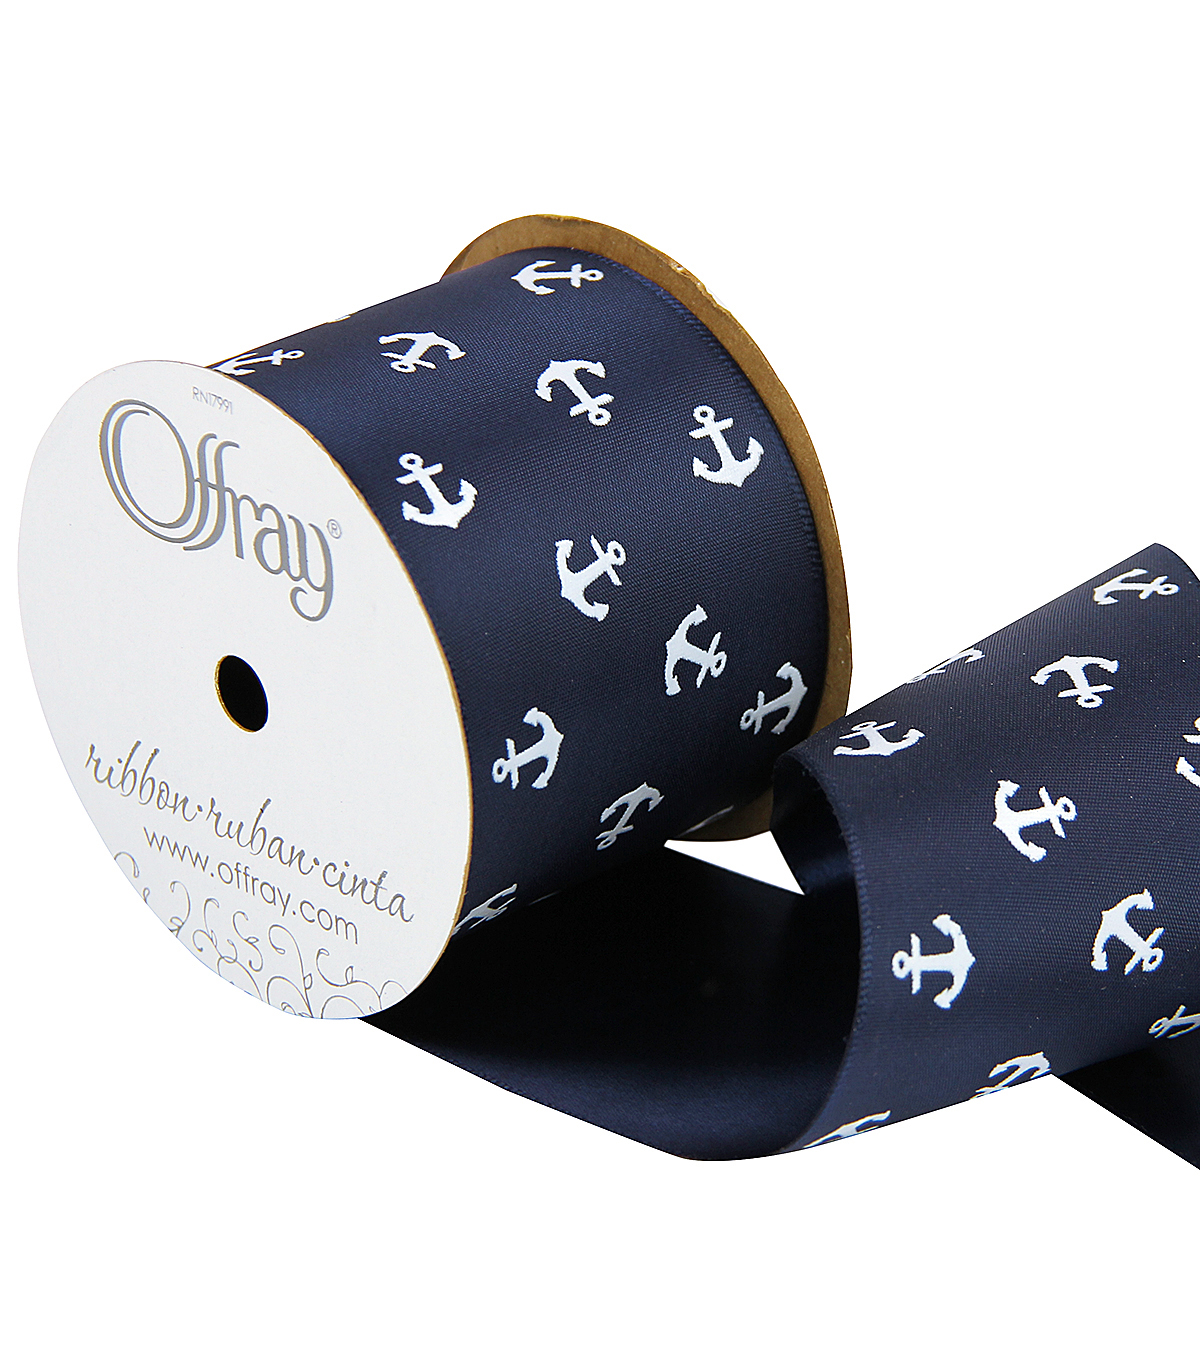 2 And One Qtr Sailor Retreat Anchors Ribbon